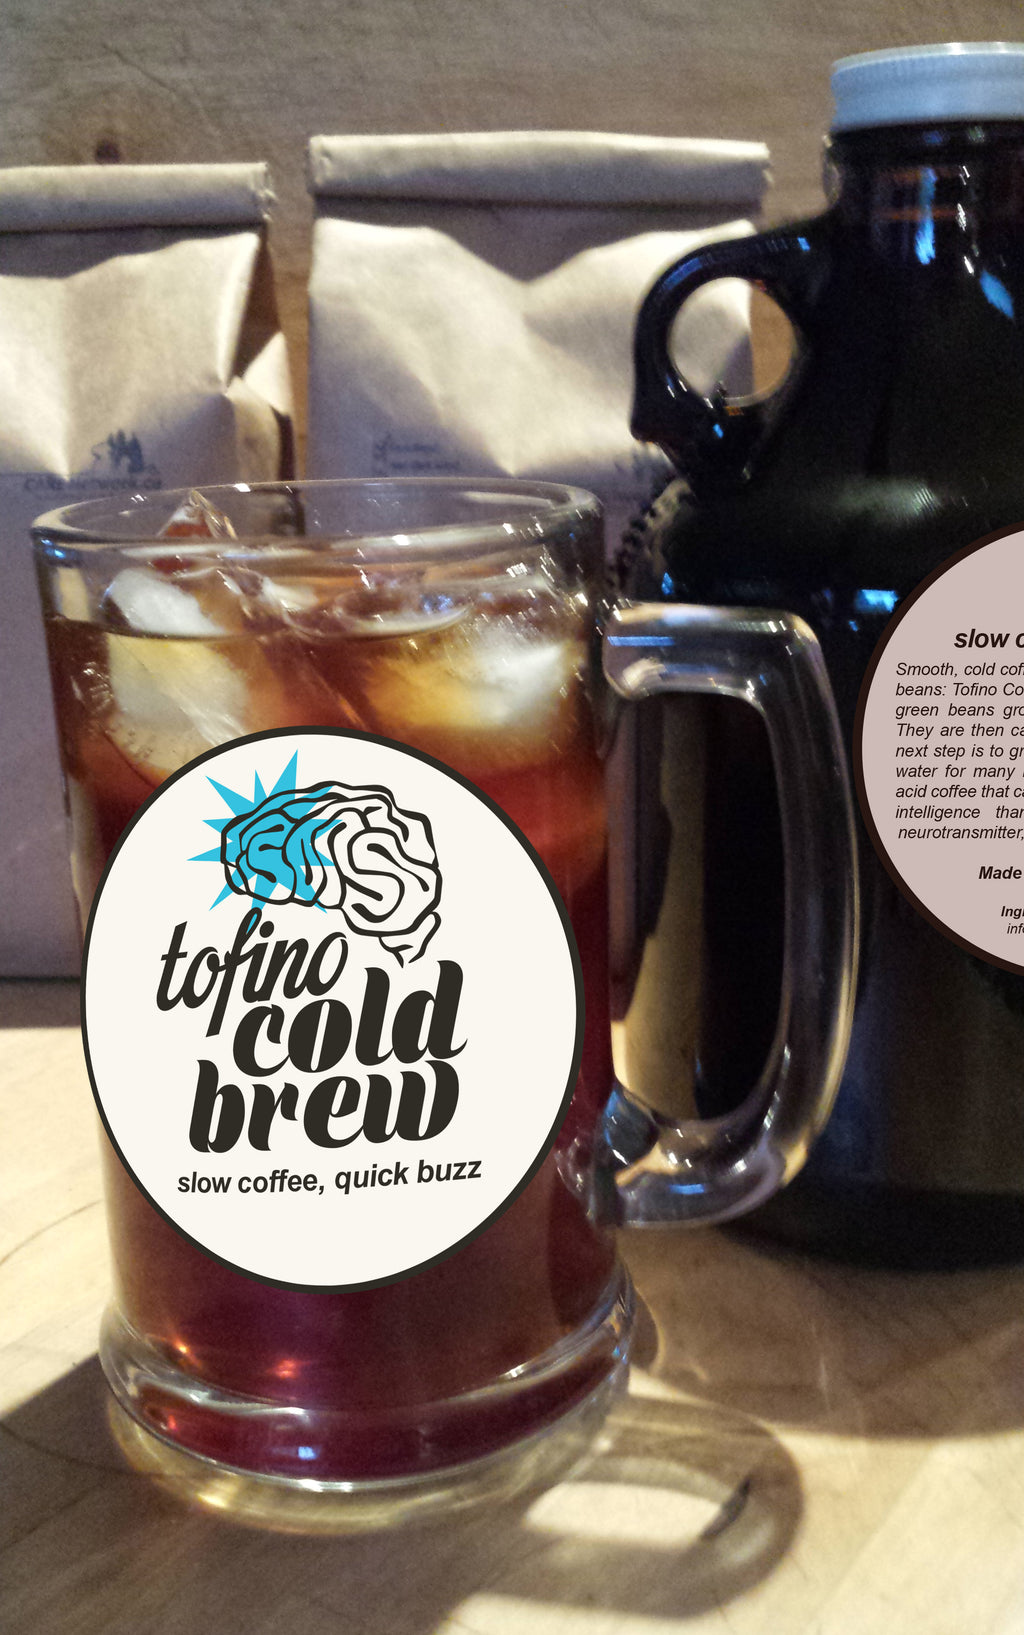 12 Months of TOFINO COLD BREW by CARE - 1 growler/mth